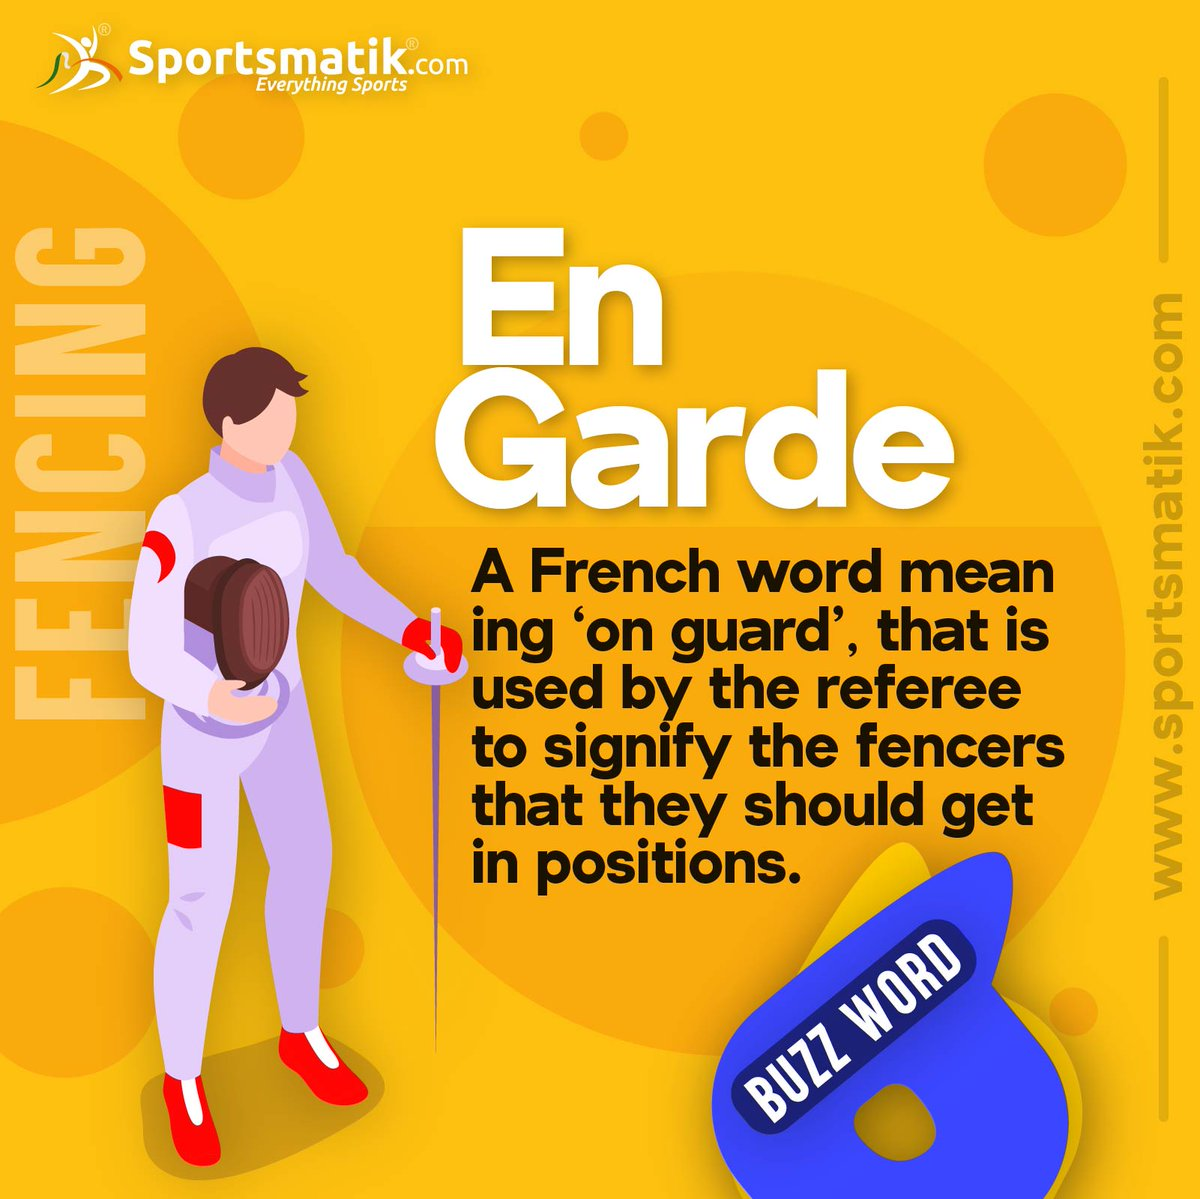 It's quite #amazing to know something new about the world of #sports everyday. Wanna know more? Visit here and explore- #Fencing #Fencer #Buzzword #Fencingclub #Fencingposts  https://sportsmatik.com/sports-corner/sports-know-how/fencing/…pic.twitter.com/T8Lls7xMEM